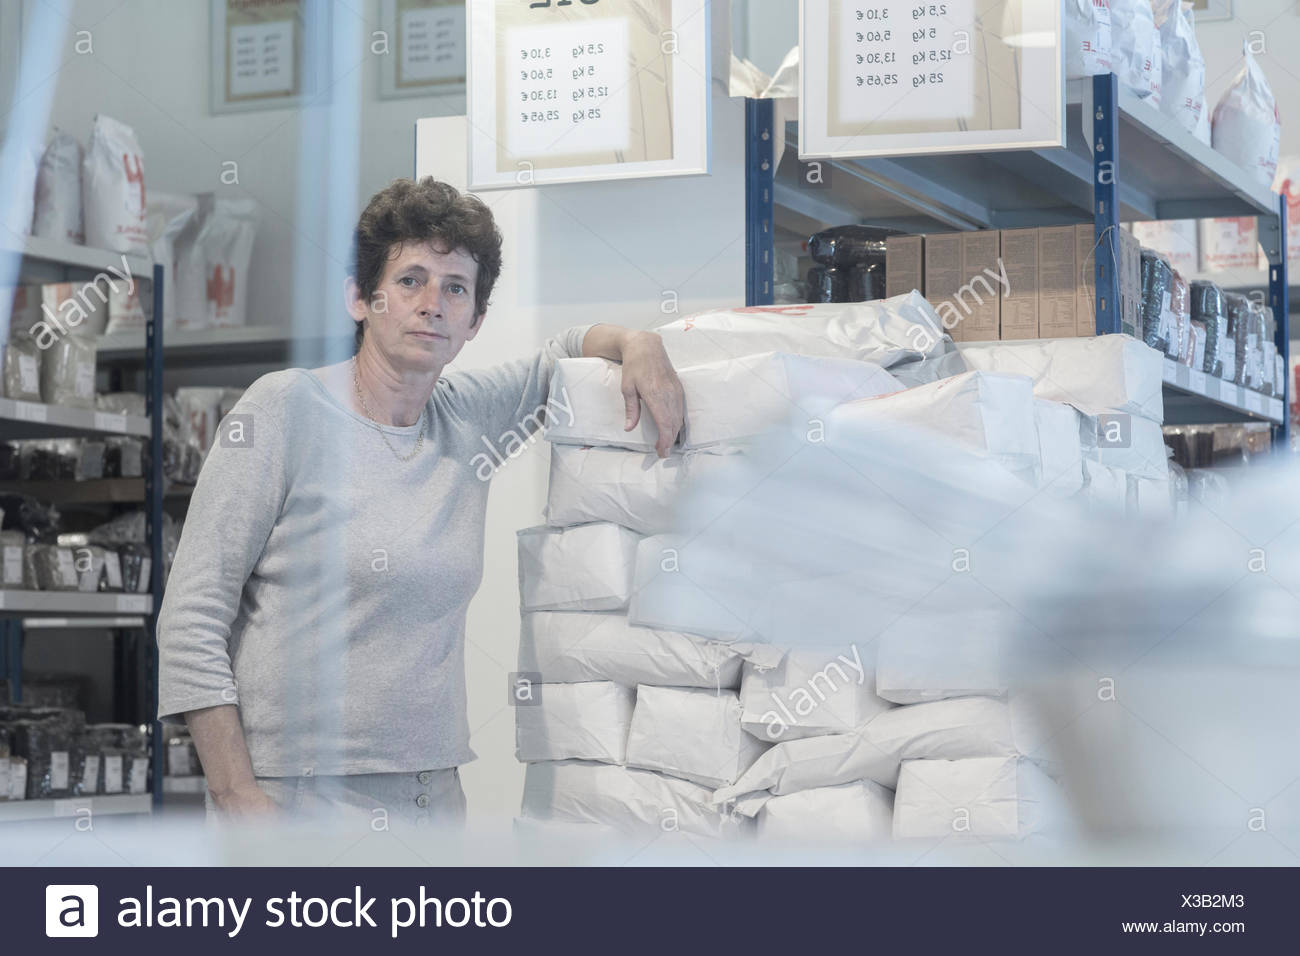 Portrait of female miller and flour sacks in wheat mill stockroom - Stock Image